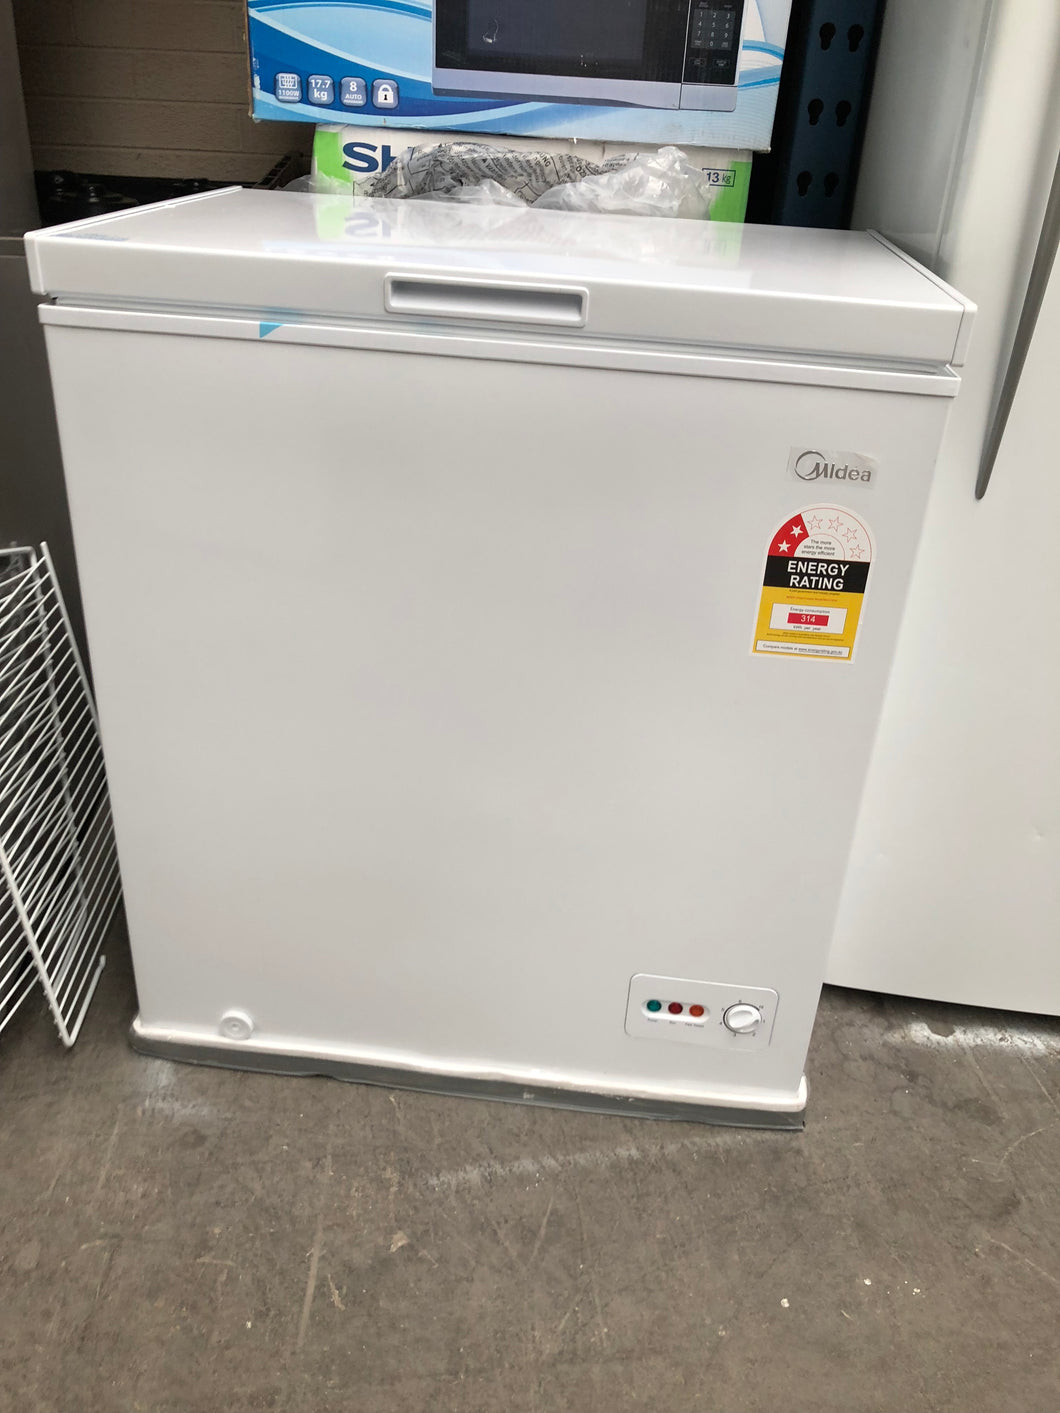 Midea 142L Chest Freezer - NEW Factory Second